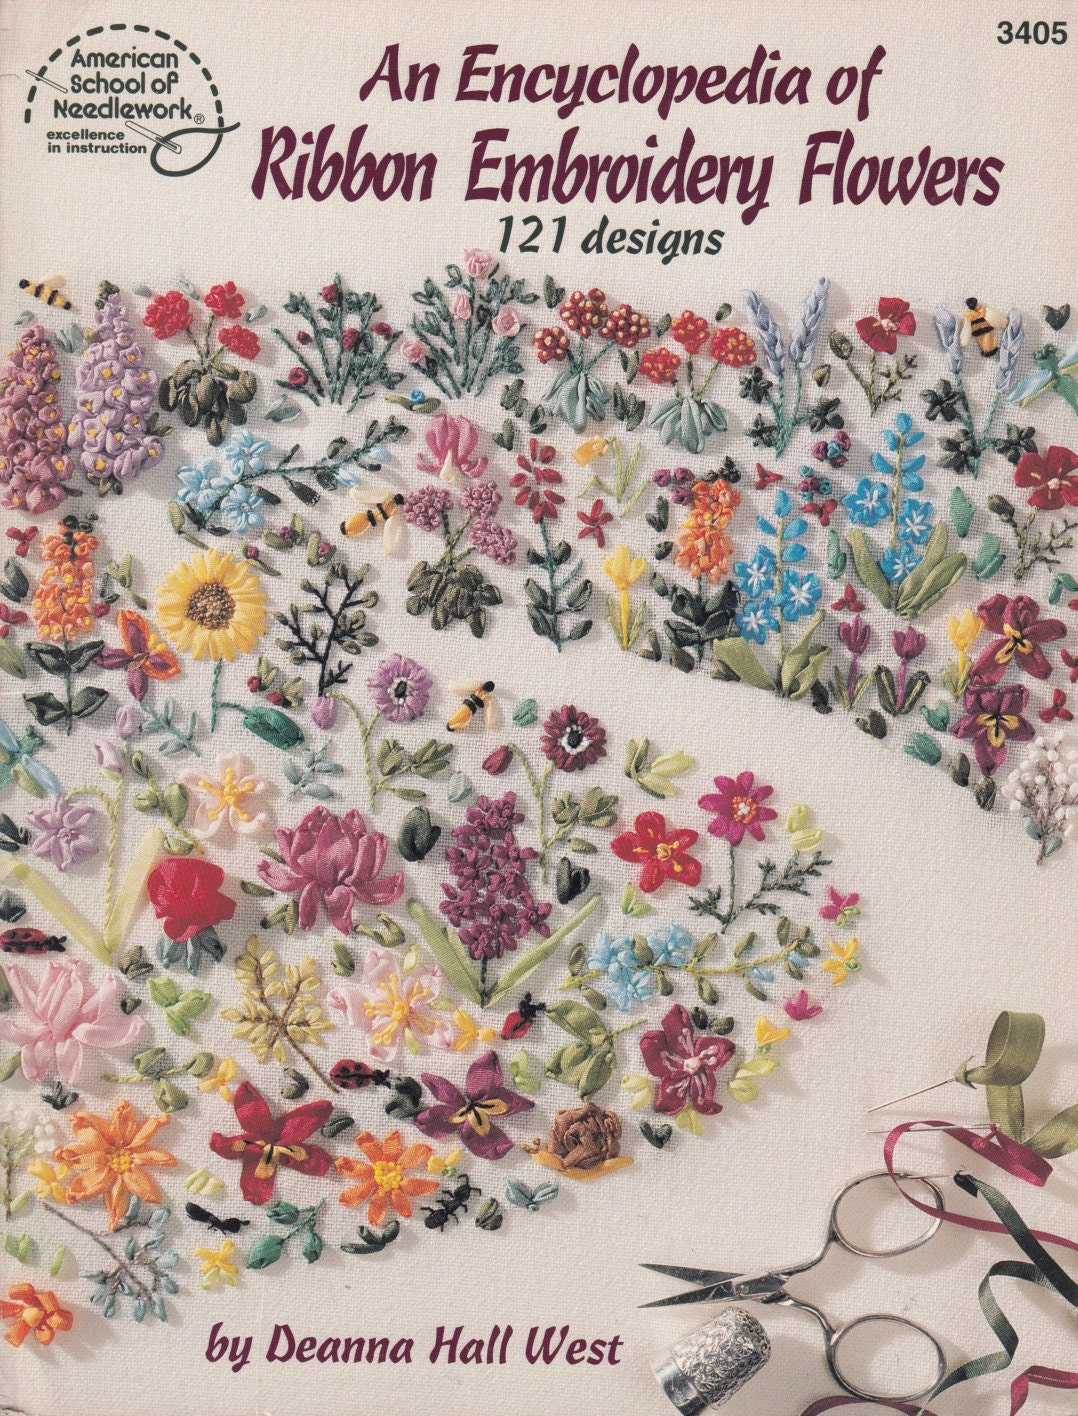 Encyclopedia of ribbon embroidery flowers accessories sewing